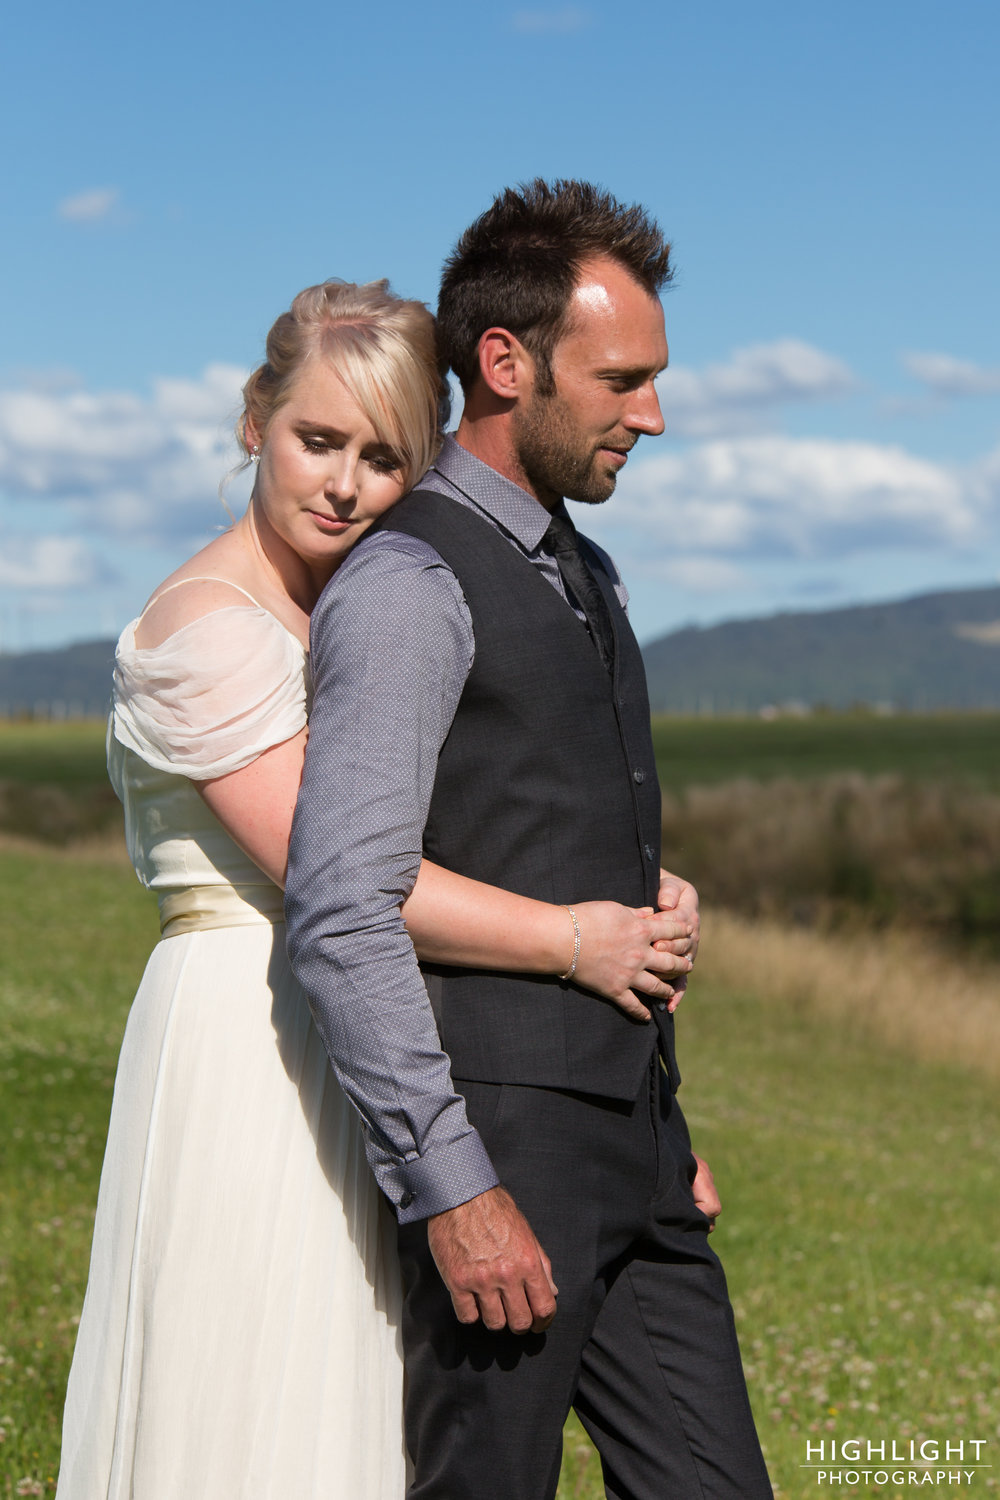 rose-johnny-highlight-wedding-photography-palmerston-north-manawatu